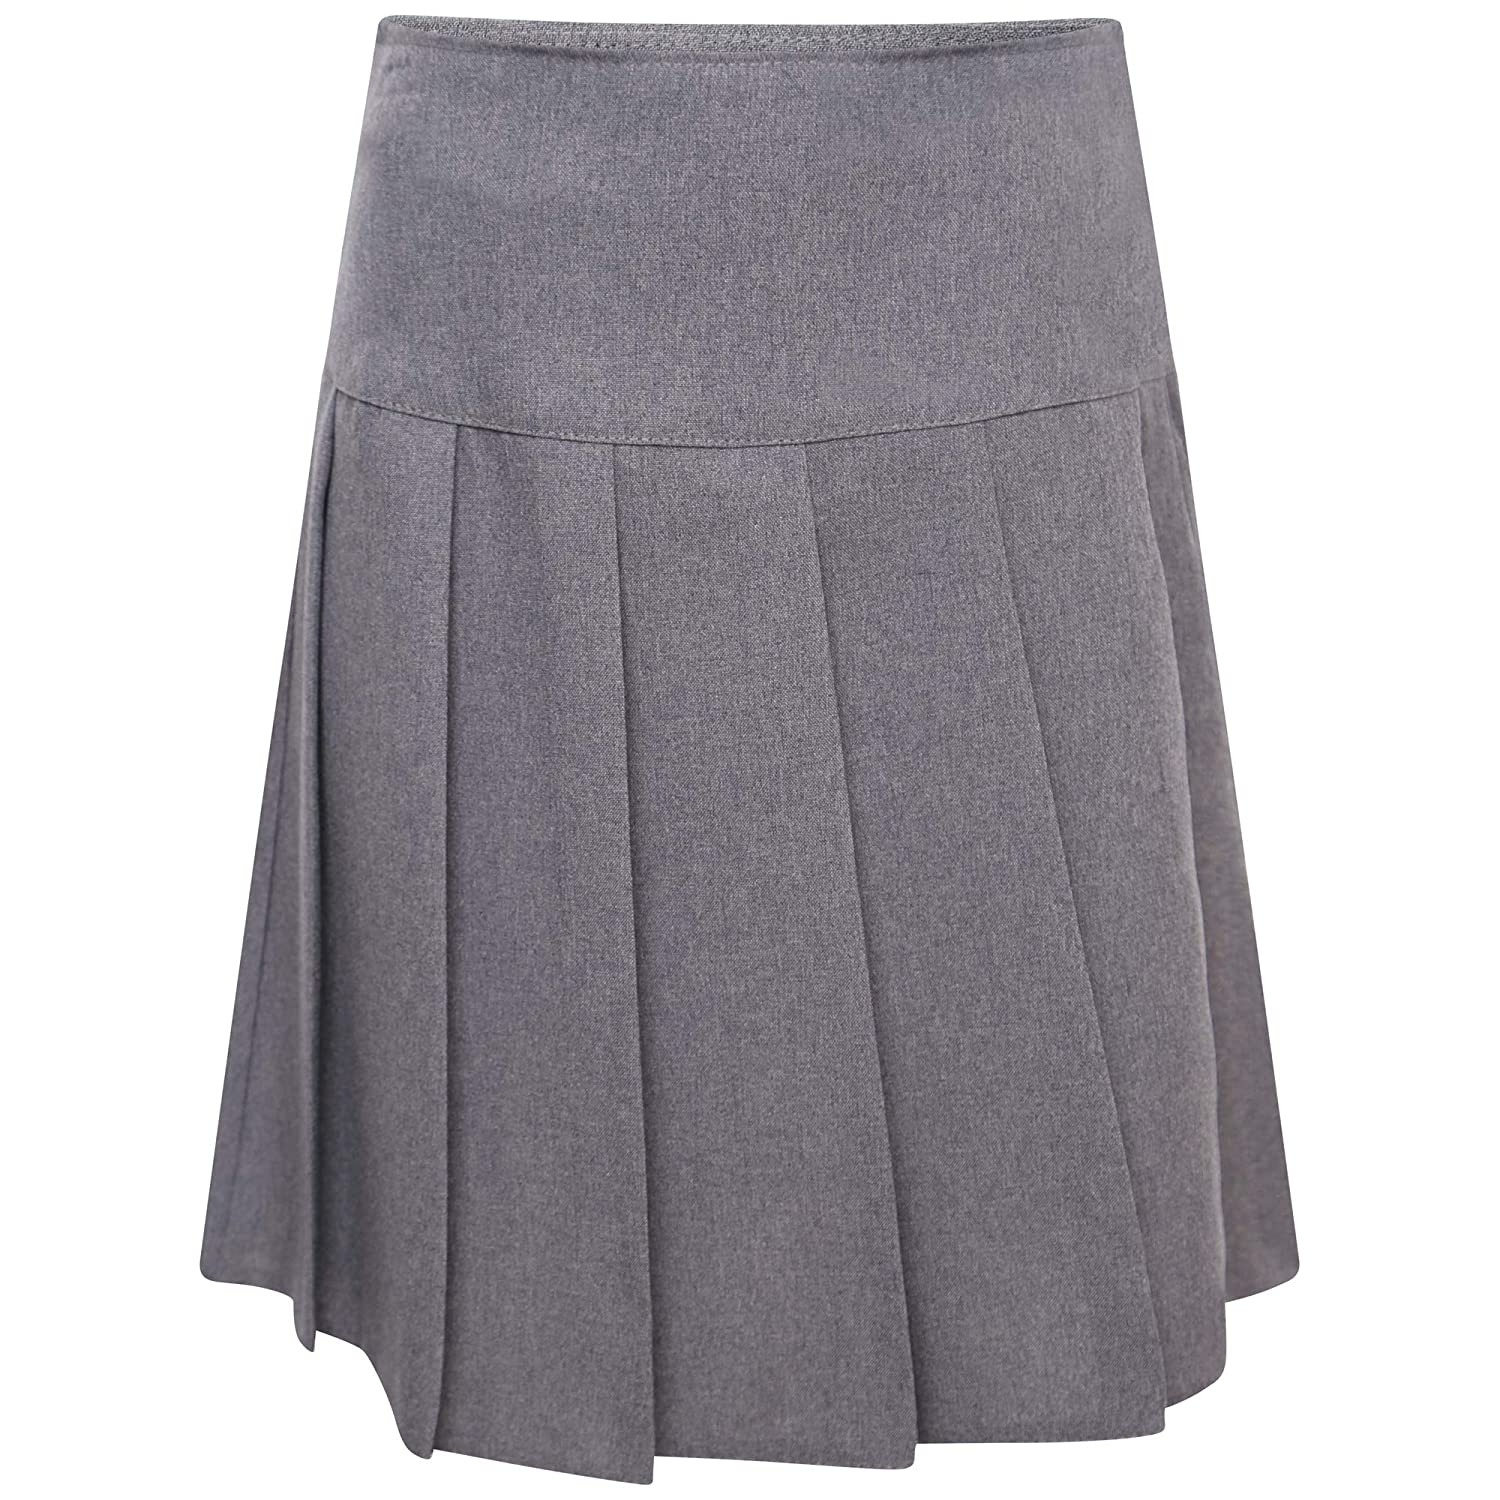 clicktostyle Kids Girls Women School Uniform Grey Colour All Round Knife Pleated Skirt